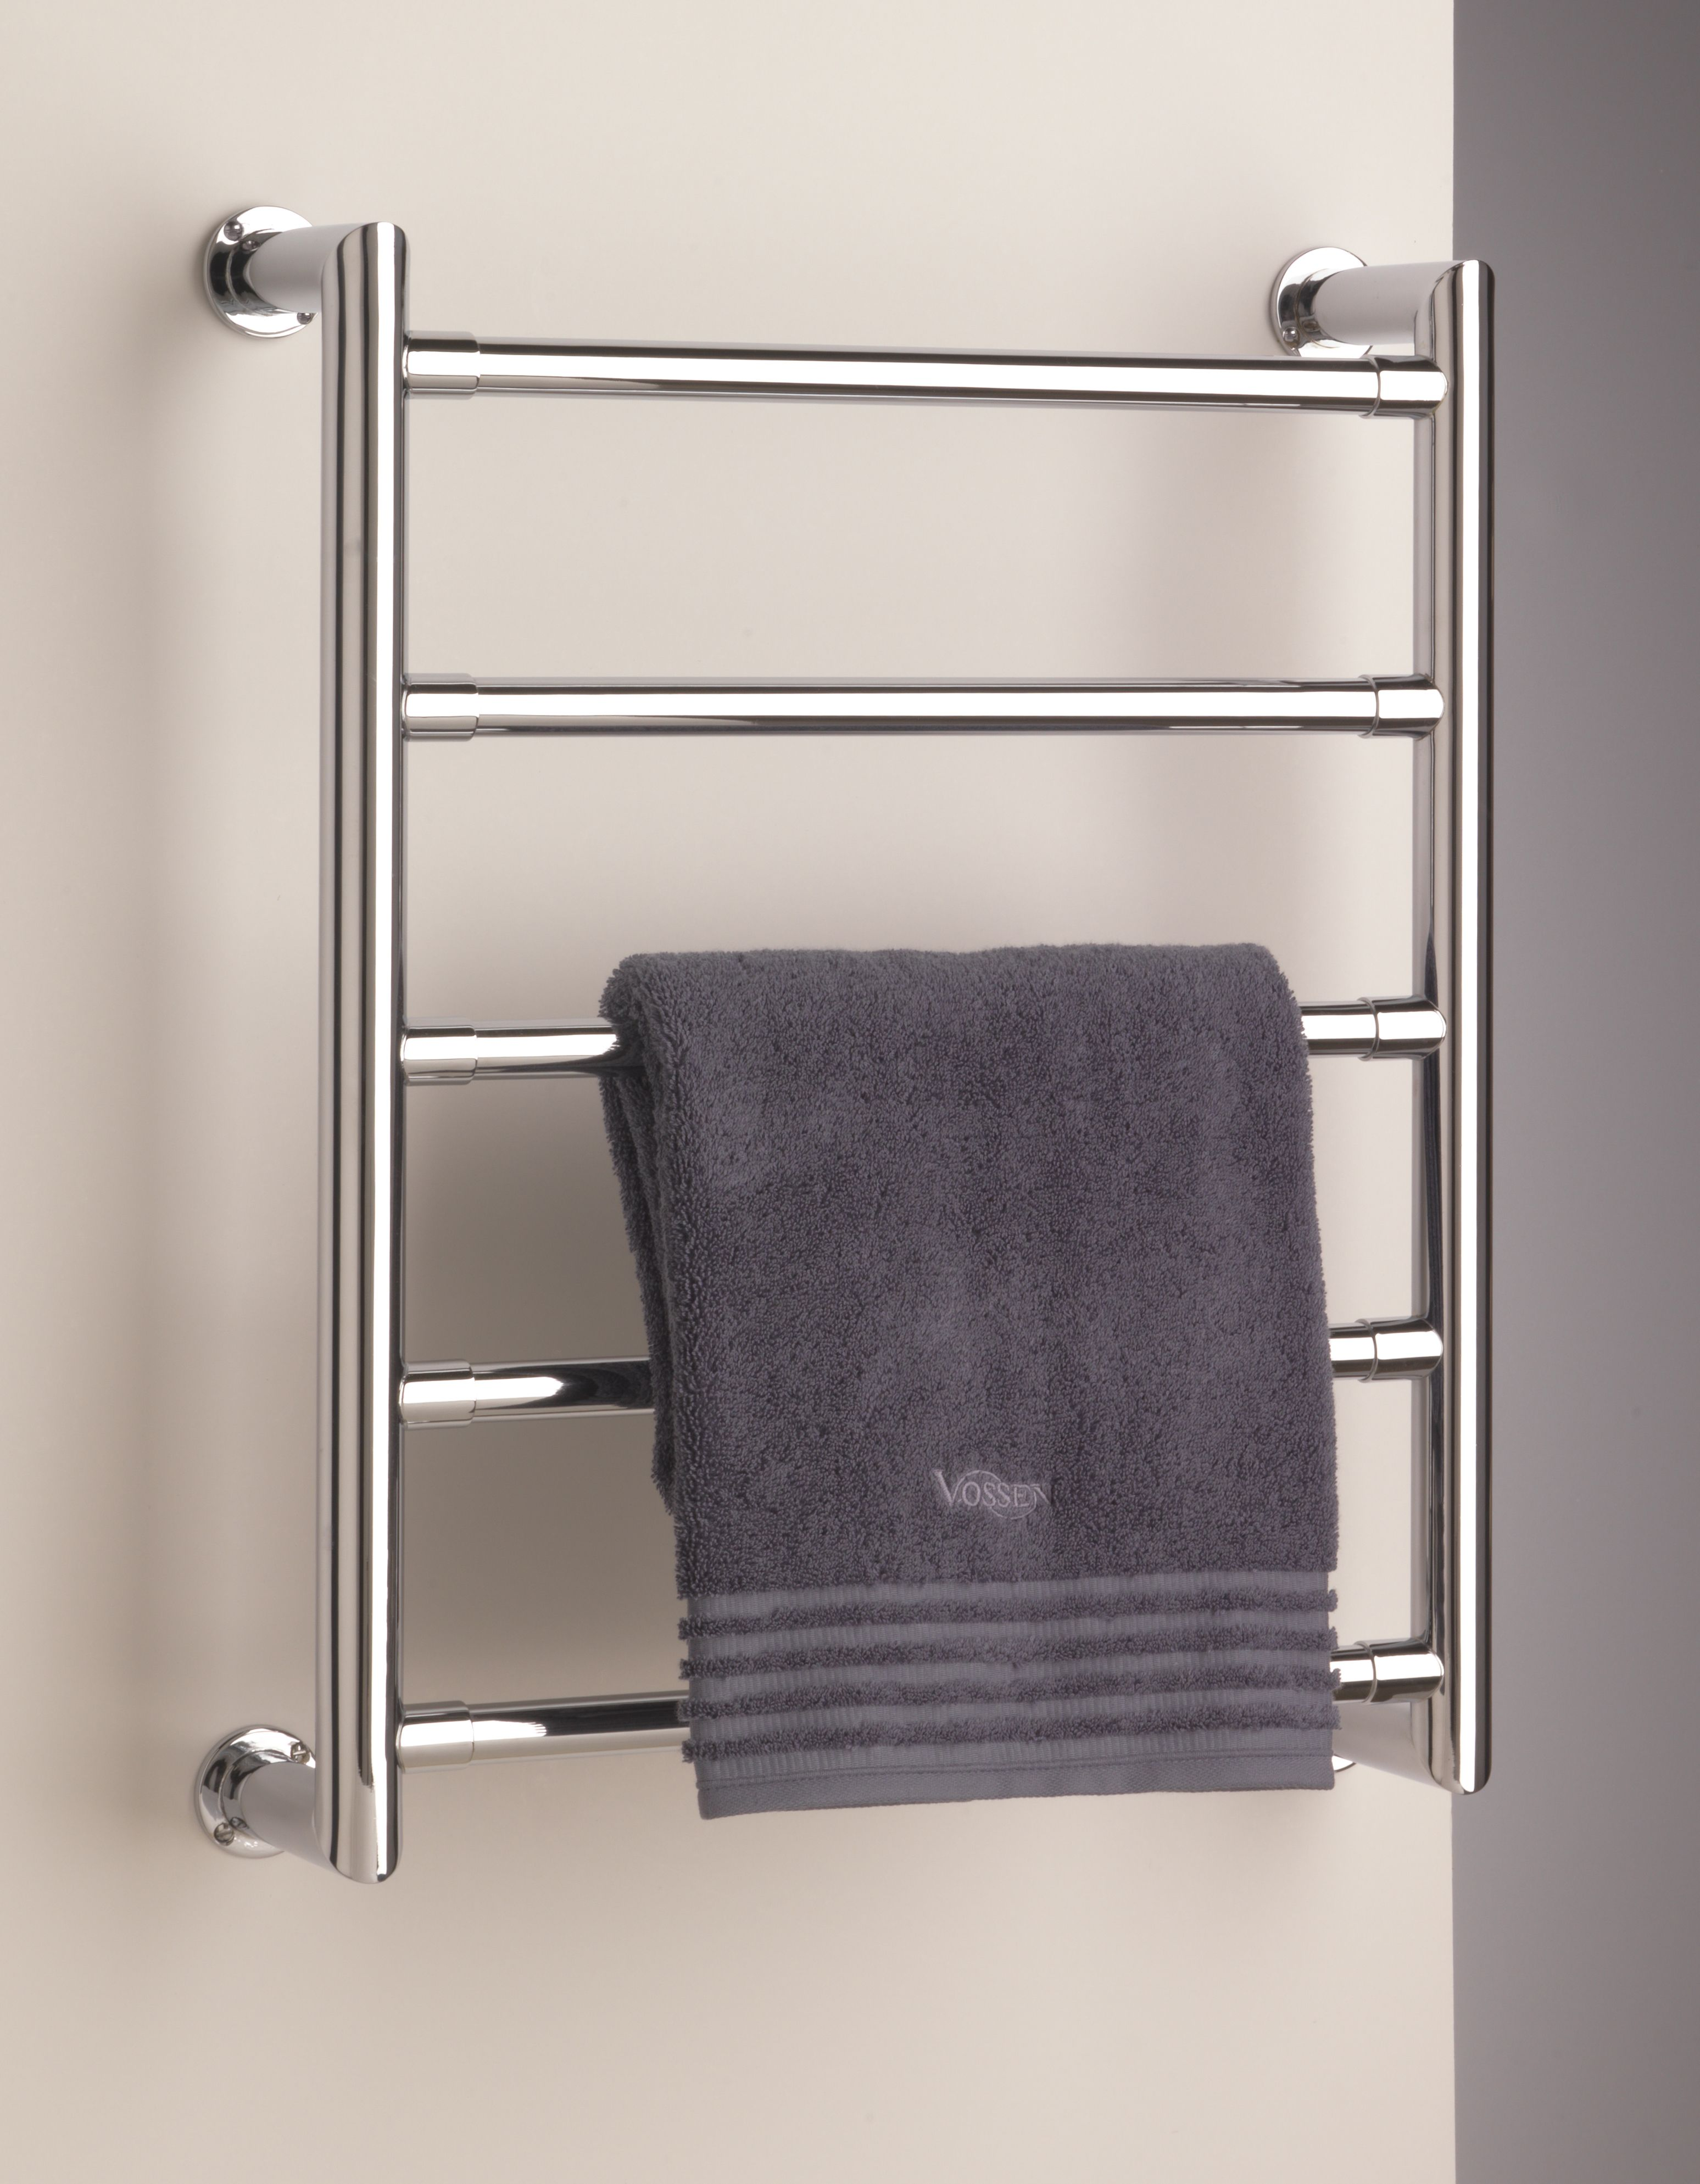 Pin on Heated Towel Warmers From The Sterlingham pany Ltd